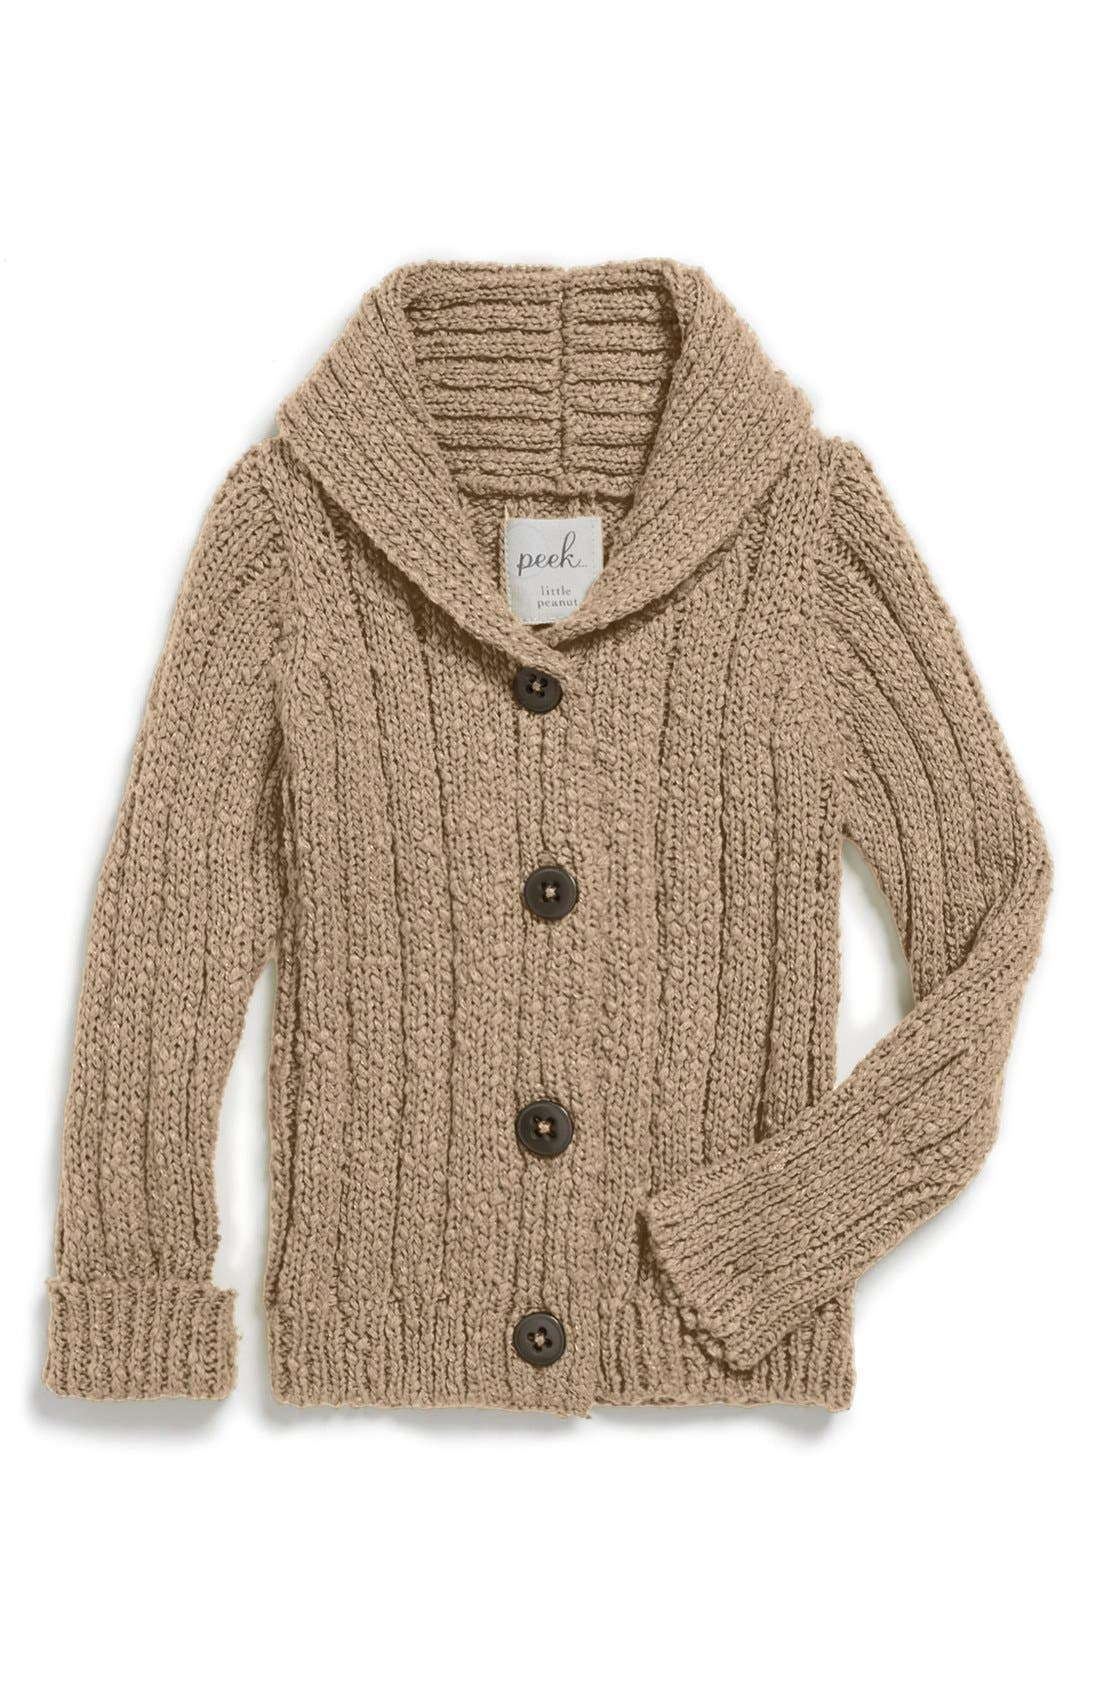 Alternate Image 1 Selected - Peek 'Dinah' Cable Knit Cardigan (Baby Girls)